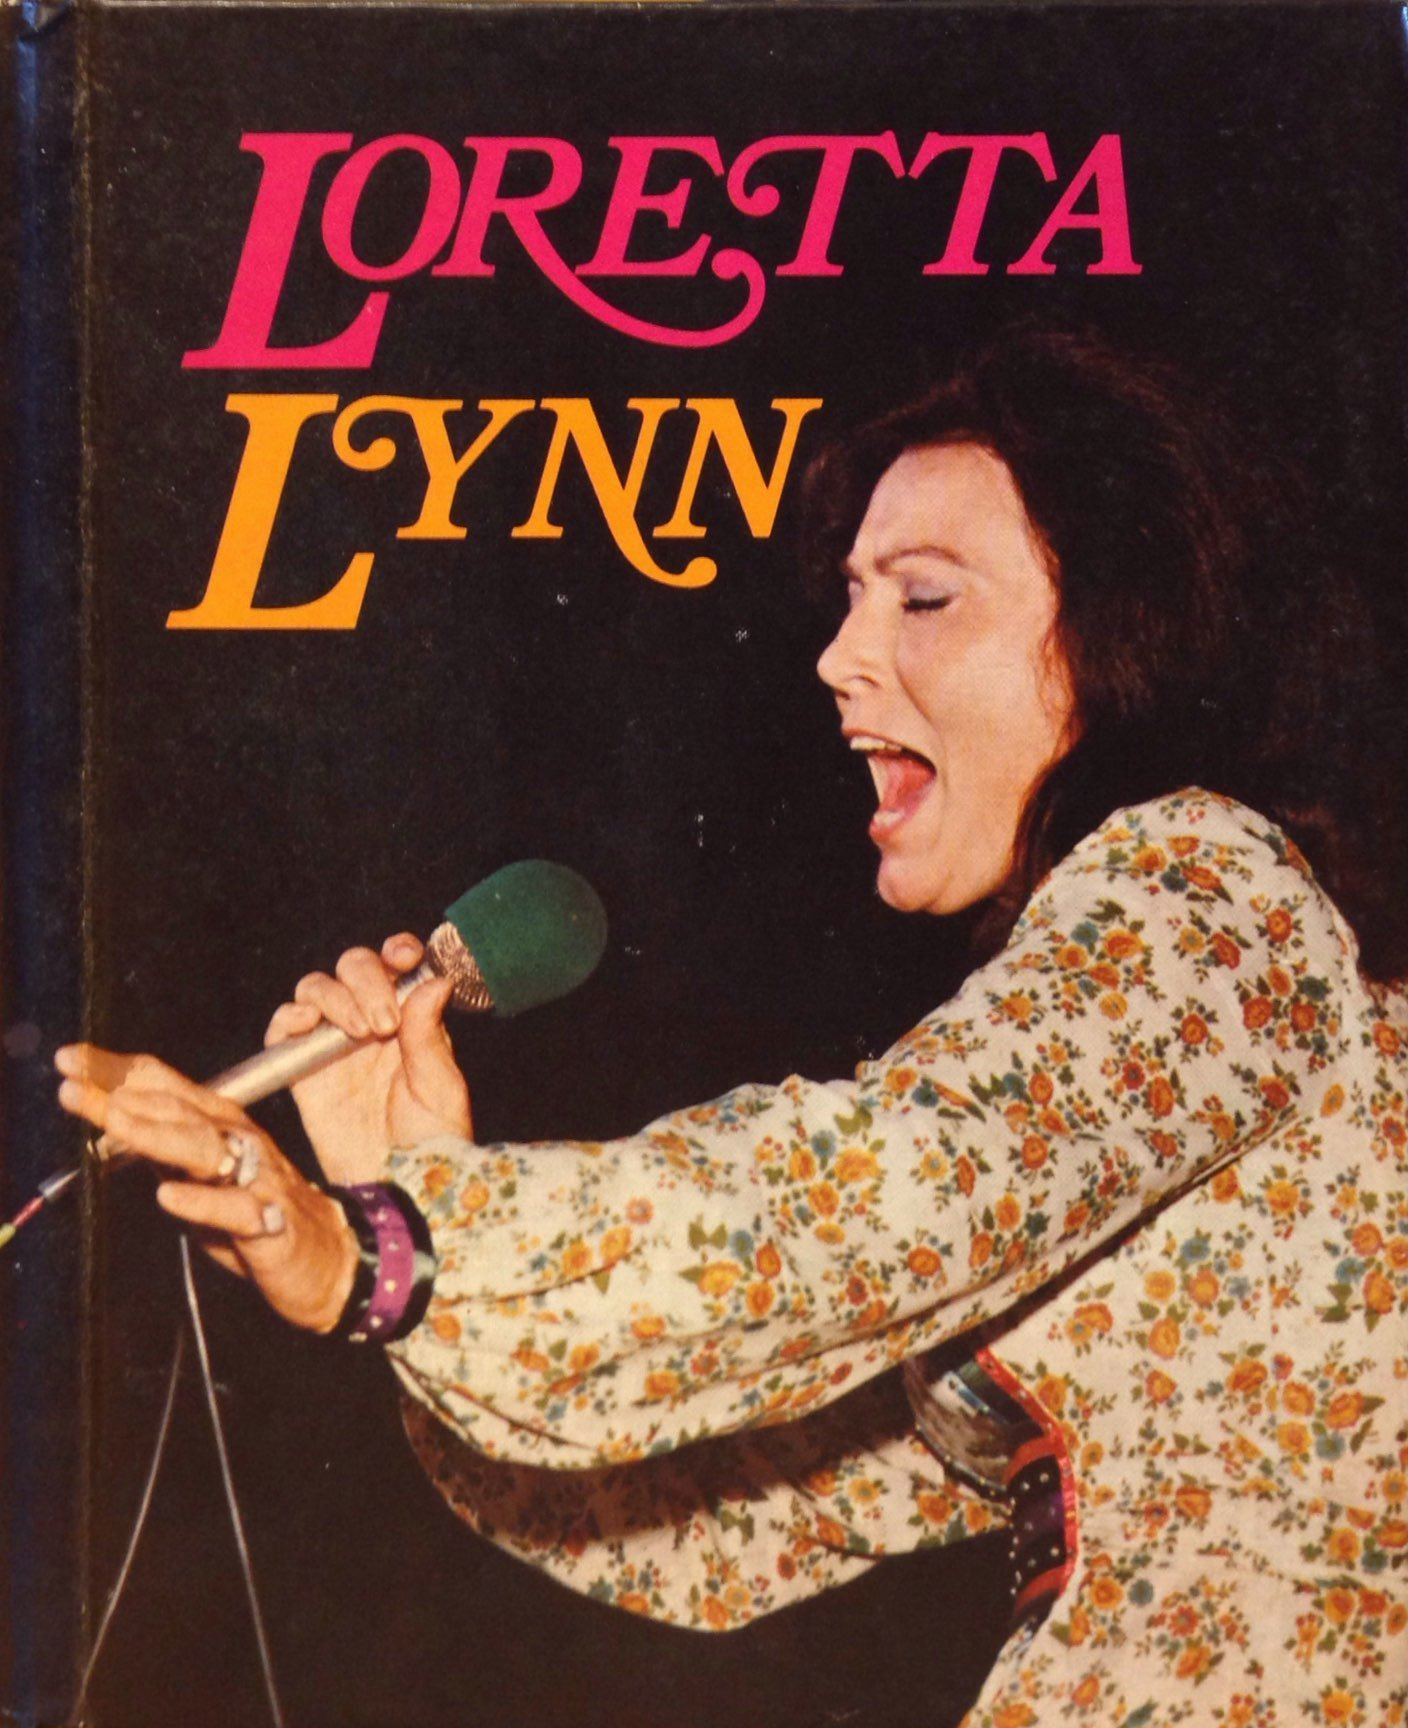 Loretta Lynn (Country music library), Krishef, Robert K.